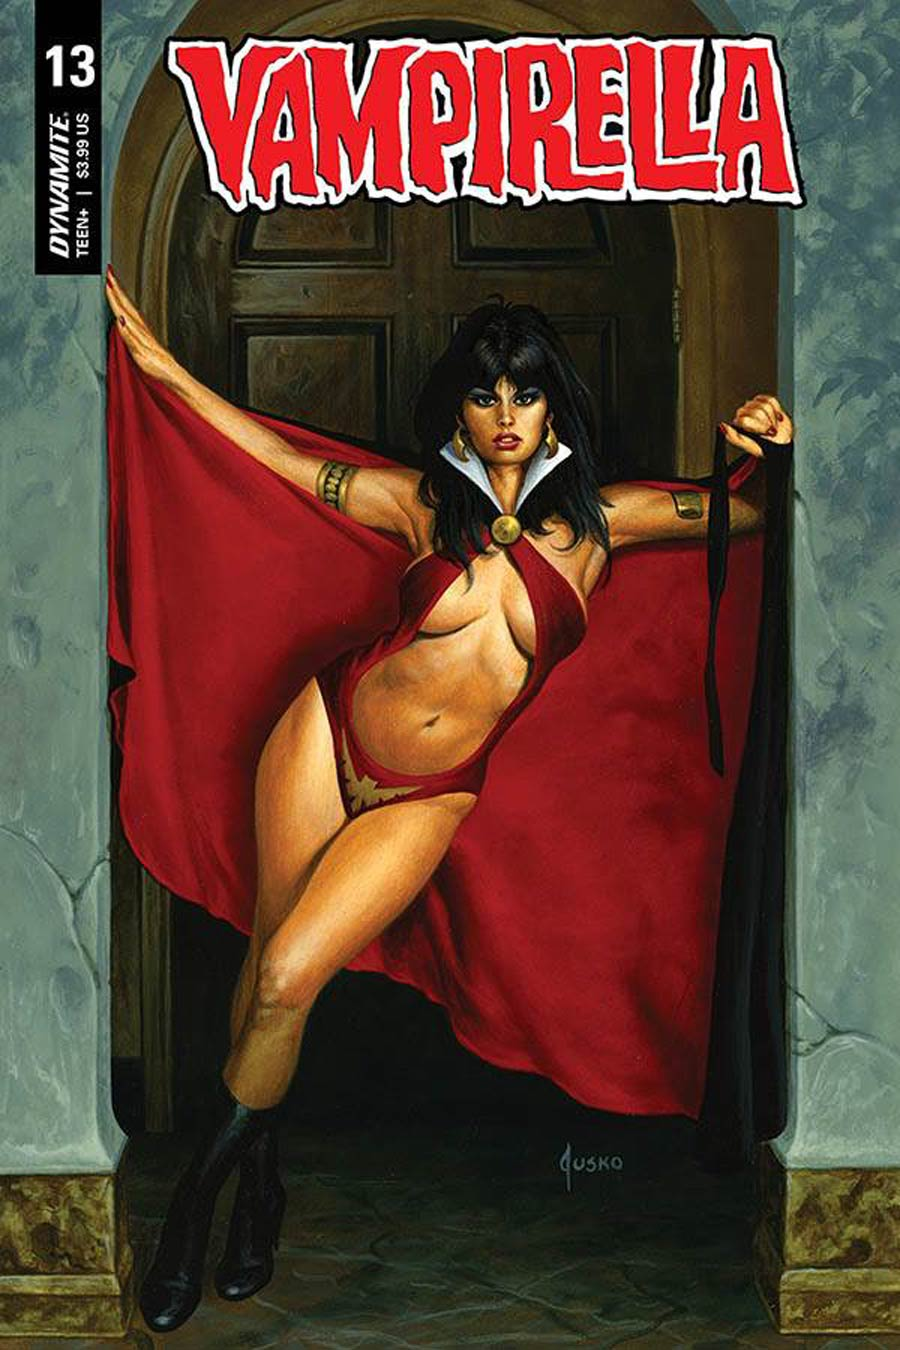 Vampirella Vol 8 #13 Cover B Variant Joe Jusko Cover